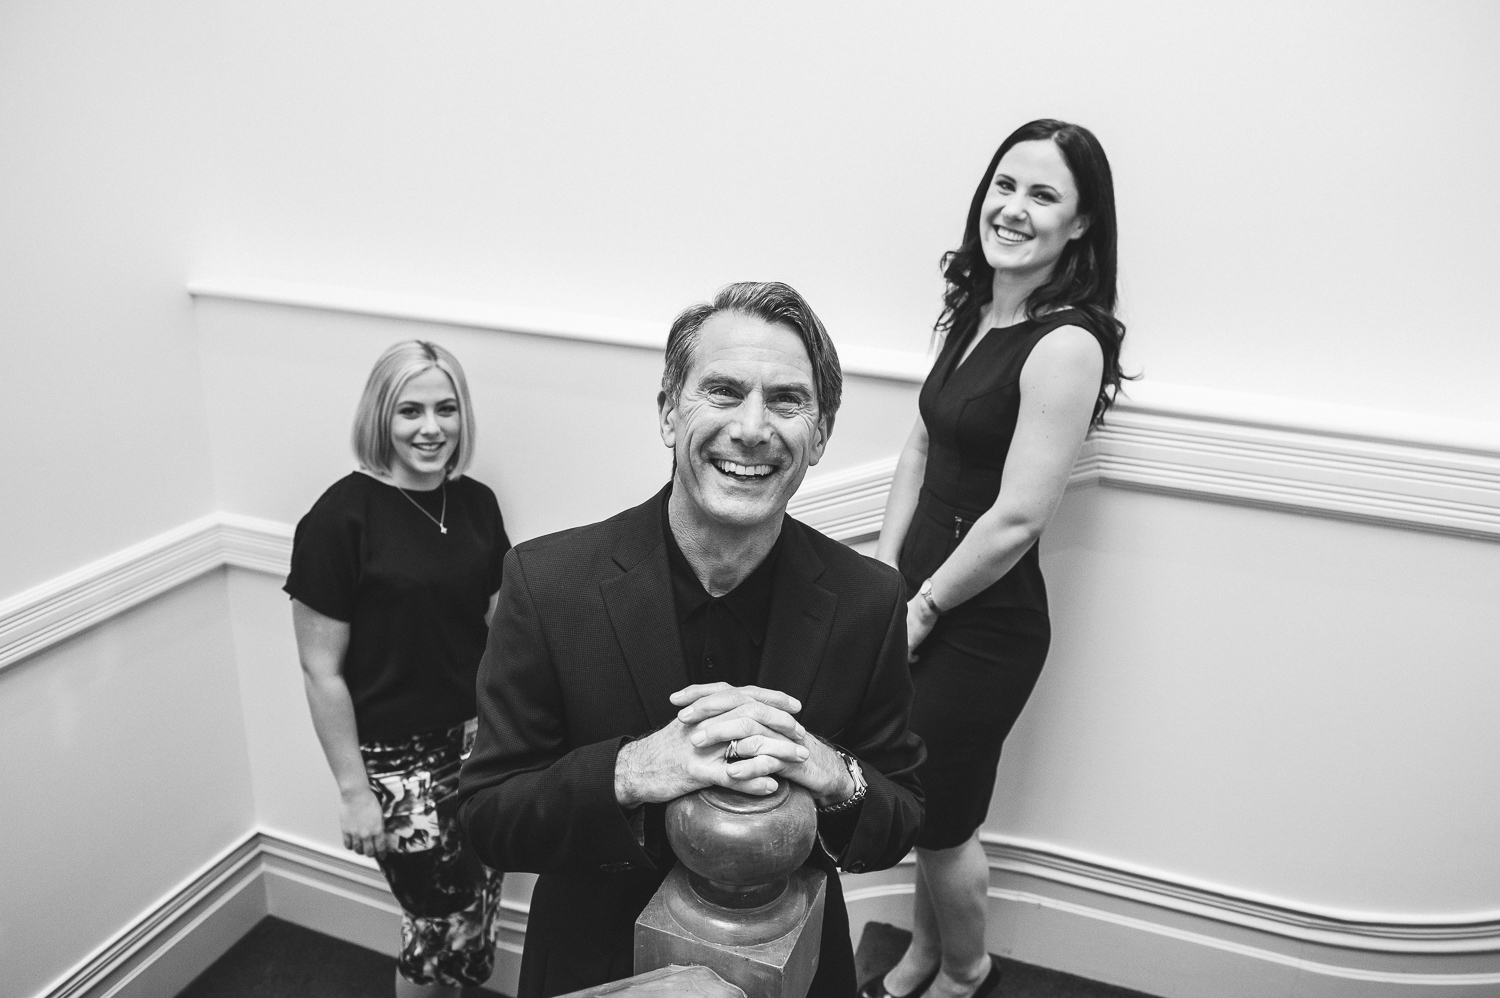 Ross Knight Corporate Portrait Shoot in Auckland, New Zealand on October 18, 2014.